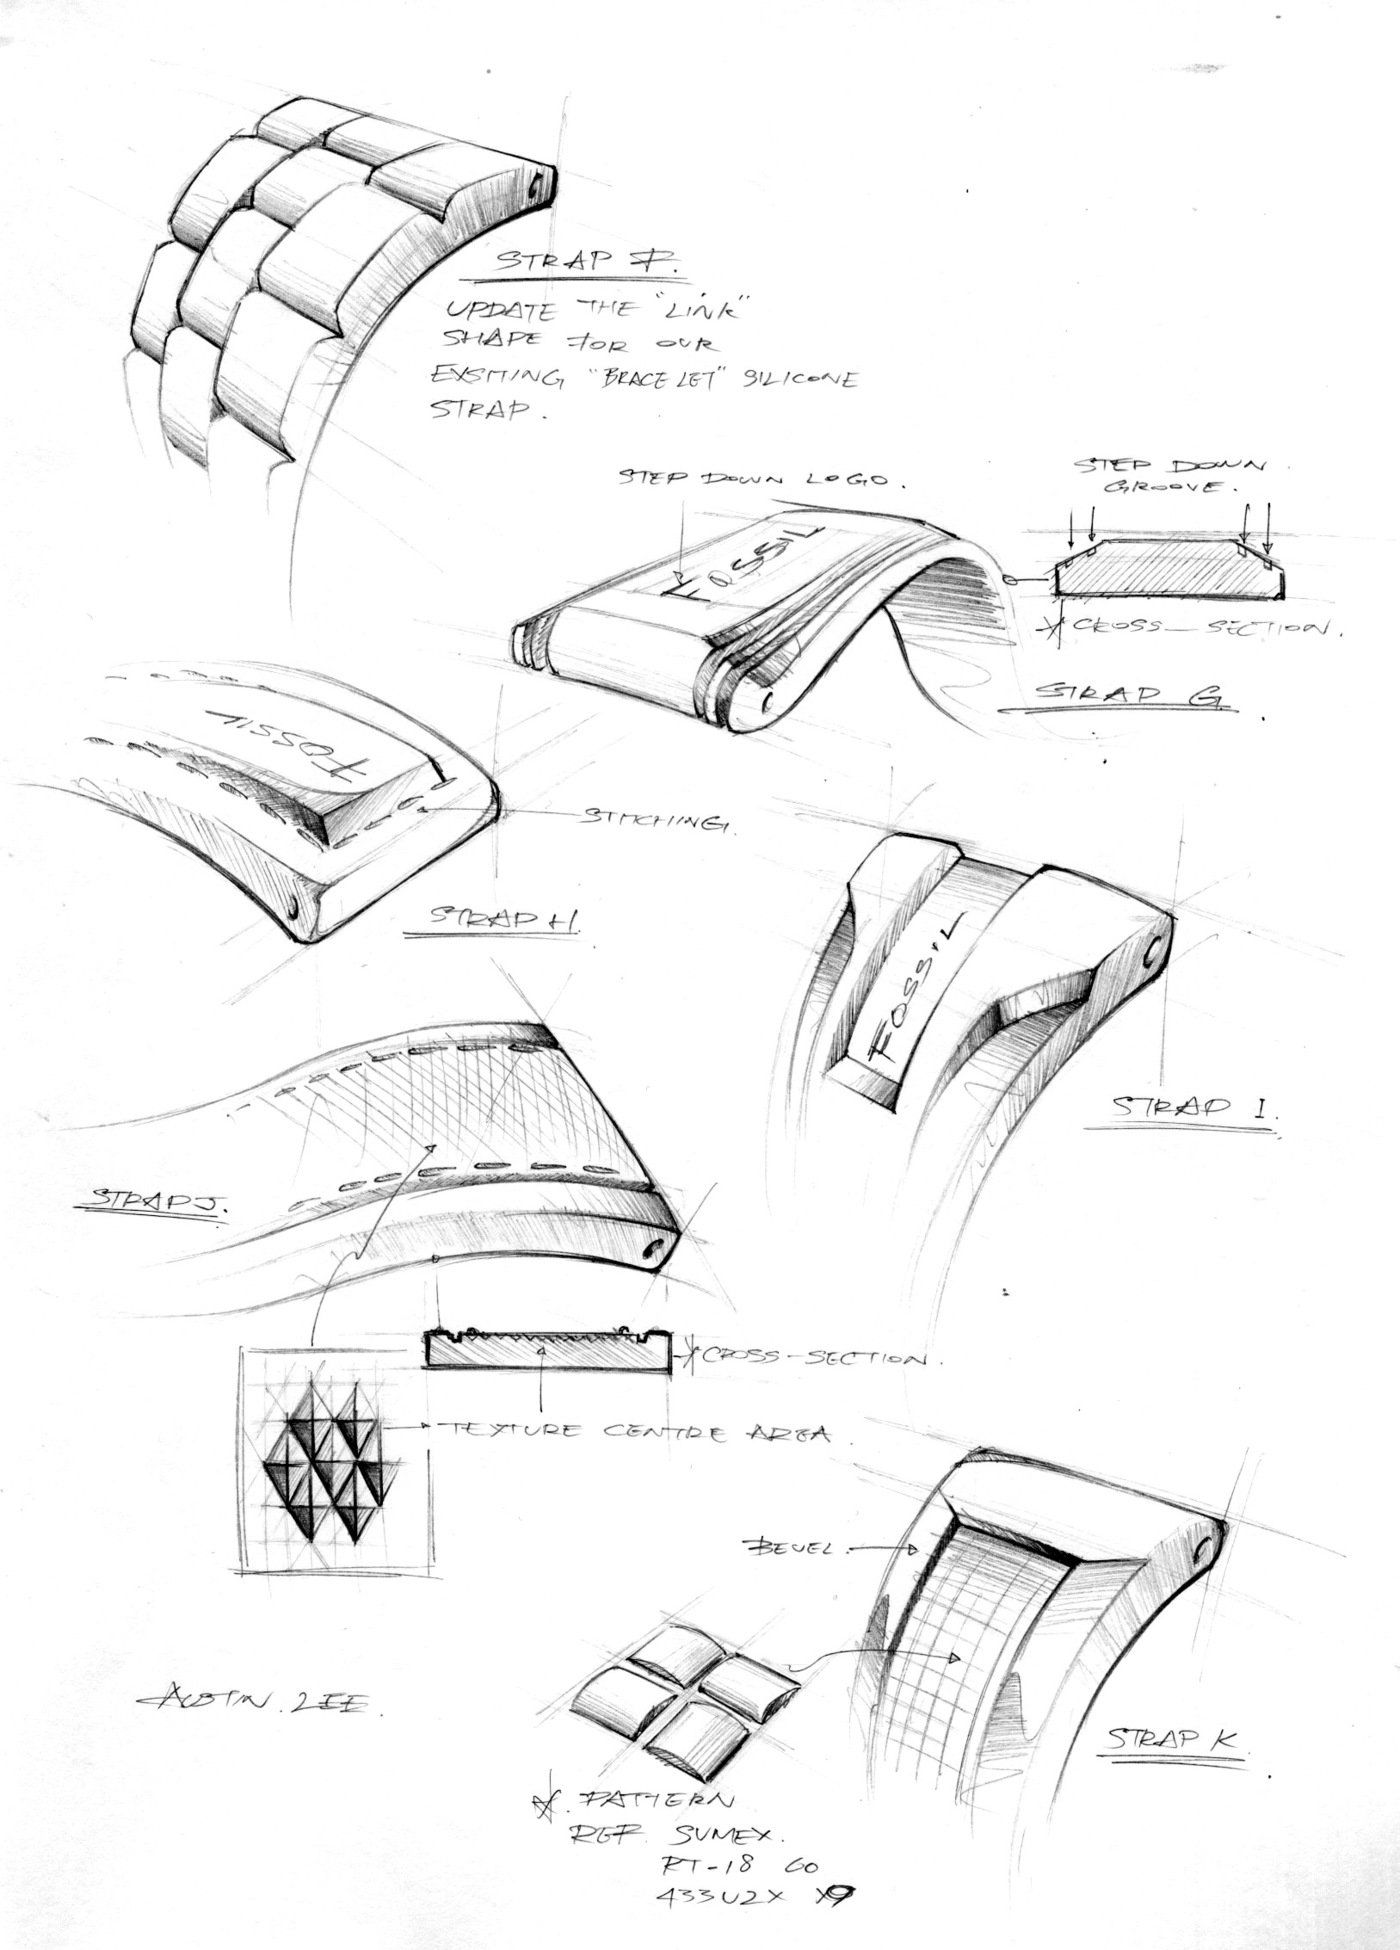 Sketches by Austin Lee at Coroflot.com